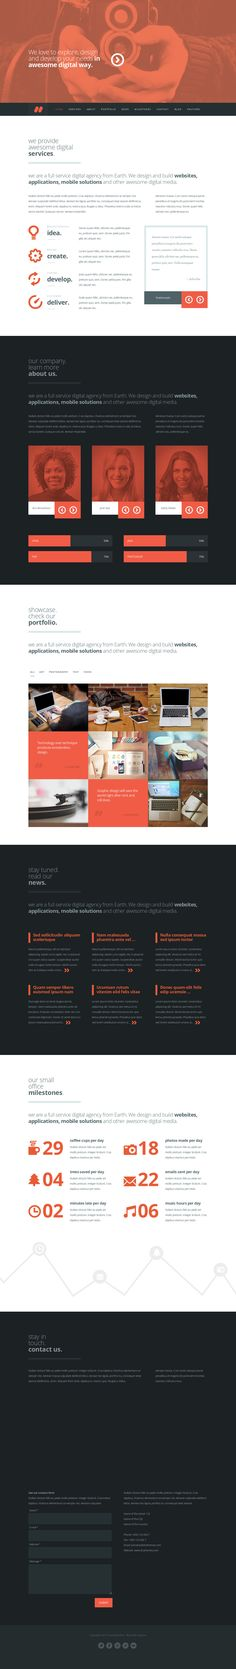 Argus from ThemeForest - a cool wordpress theme.